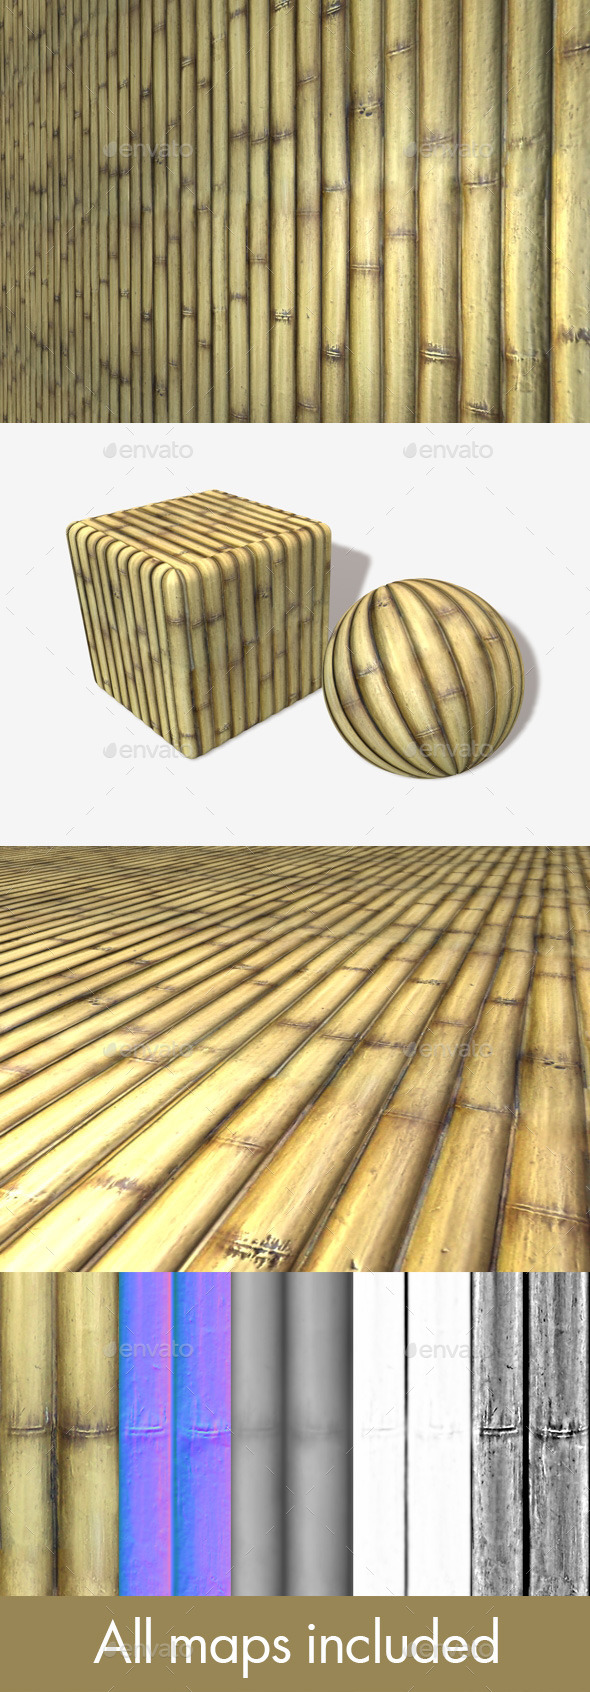 Bamboo Seamless Texture - 3DOcean Item for Sale